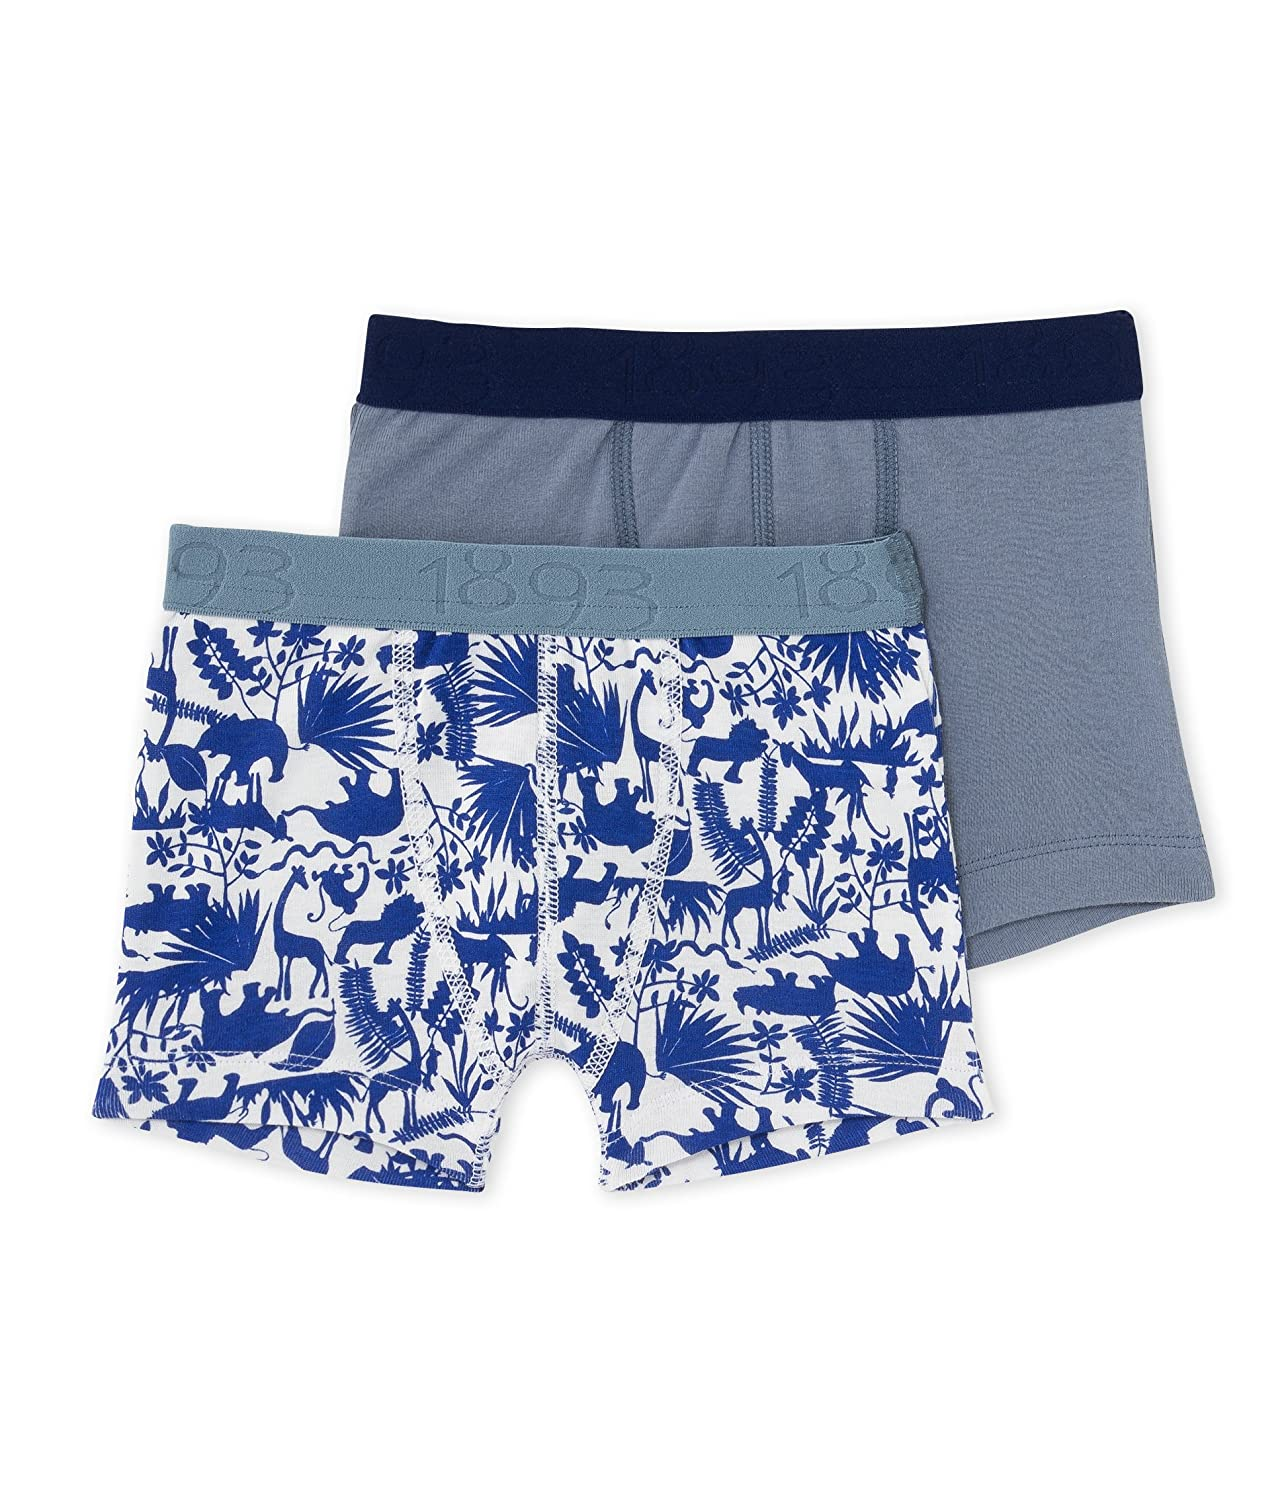 PETIT BATEAU BOYS 2 PK. BOXER SOLID GREY/NAVY PRINT STYLE 23745 SIZES 2-12